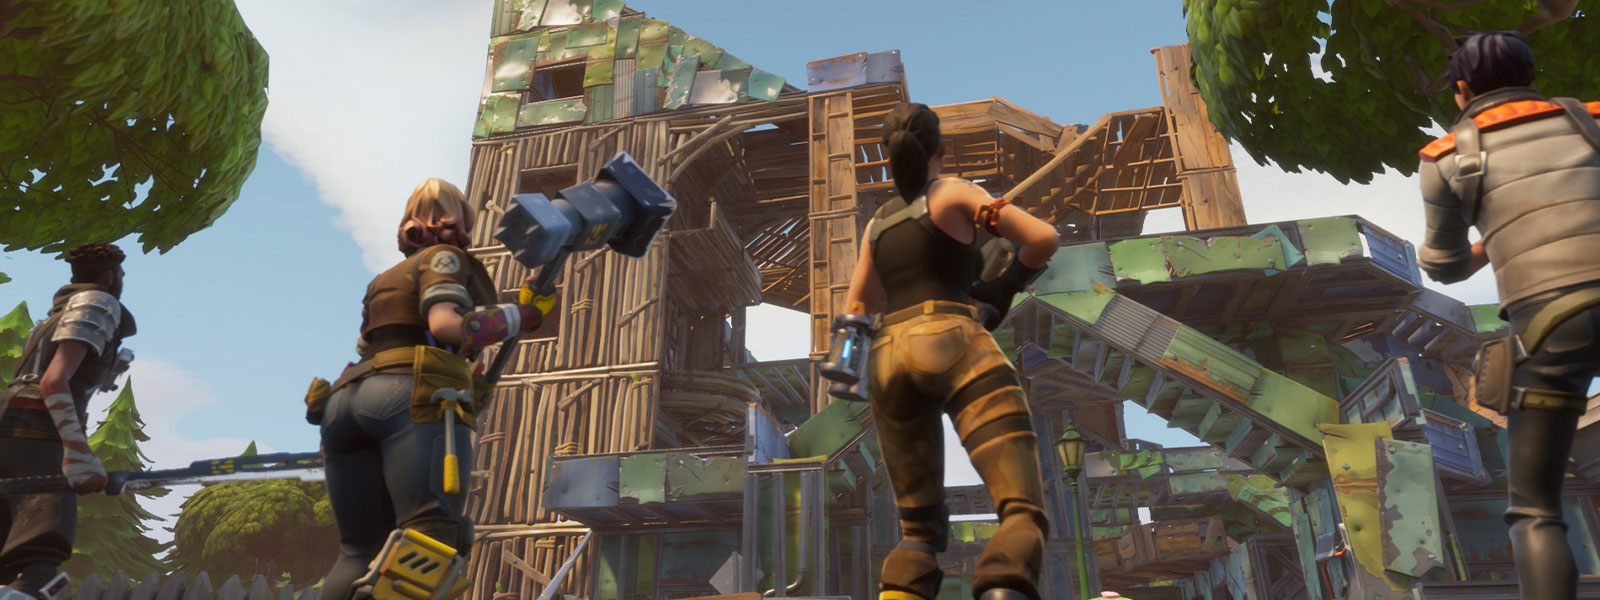 4 Fortnite characters building a fort